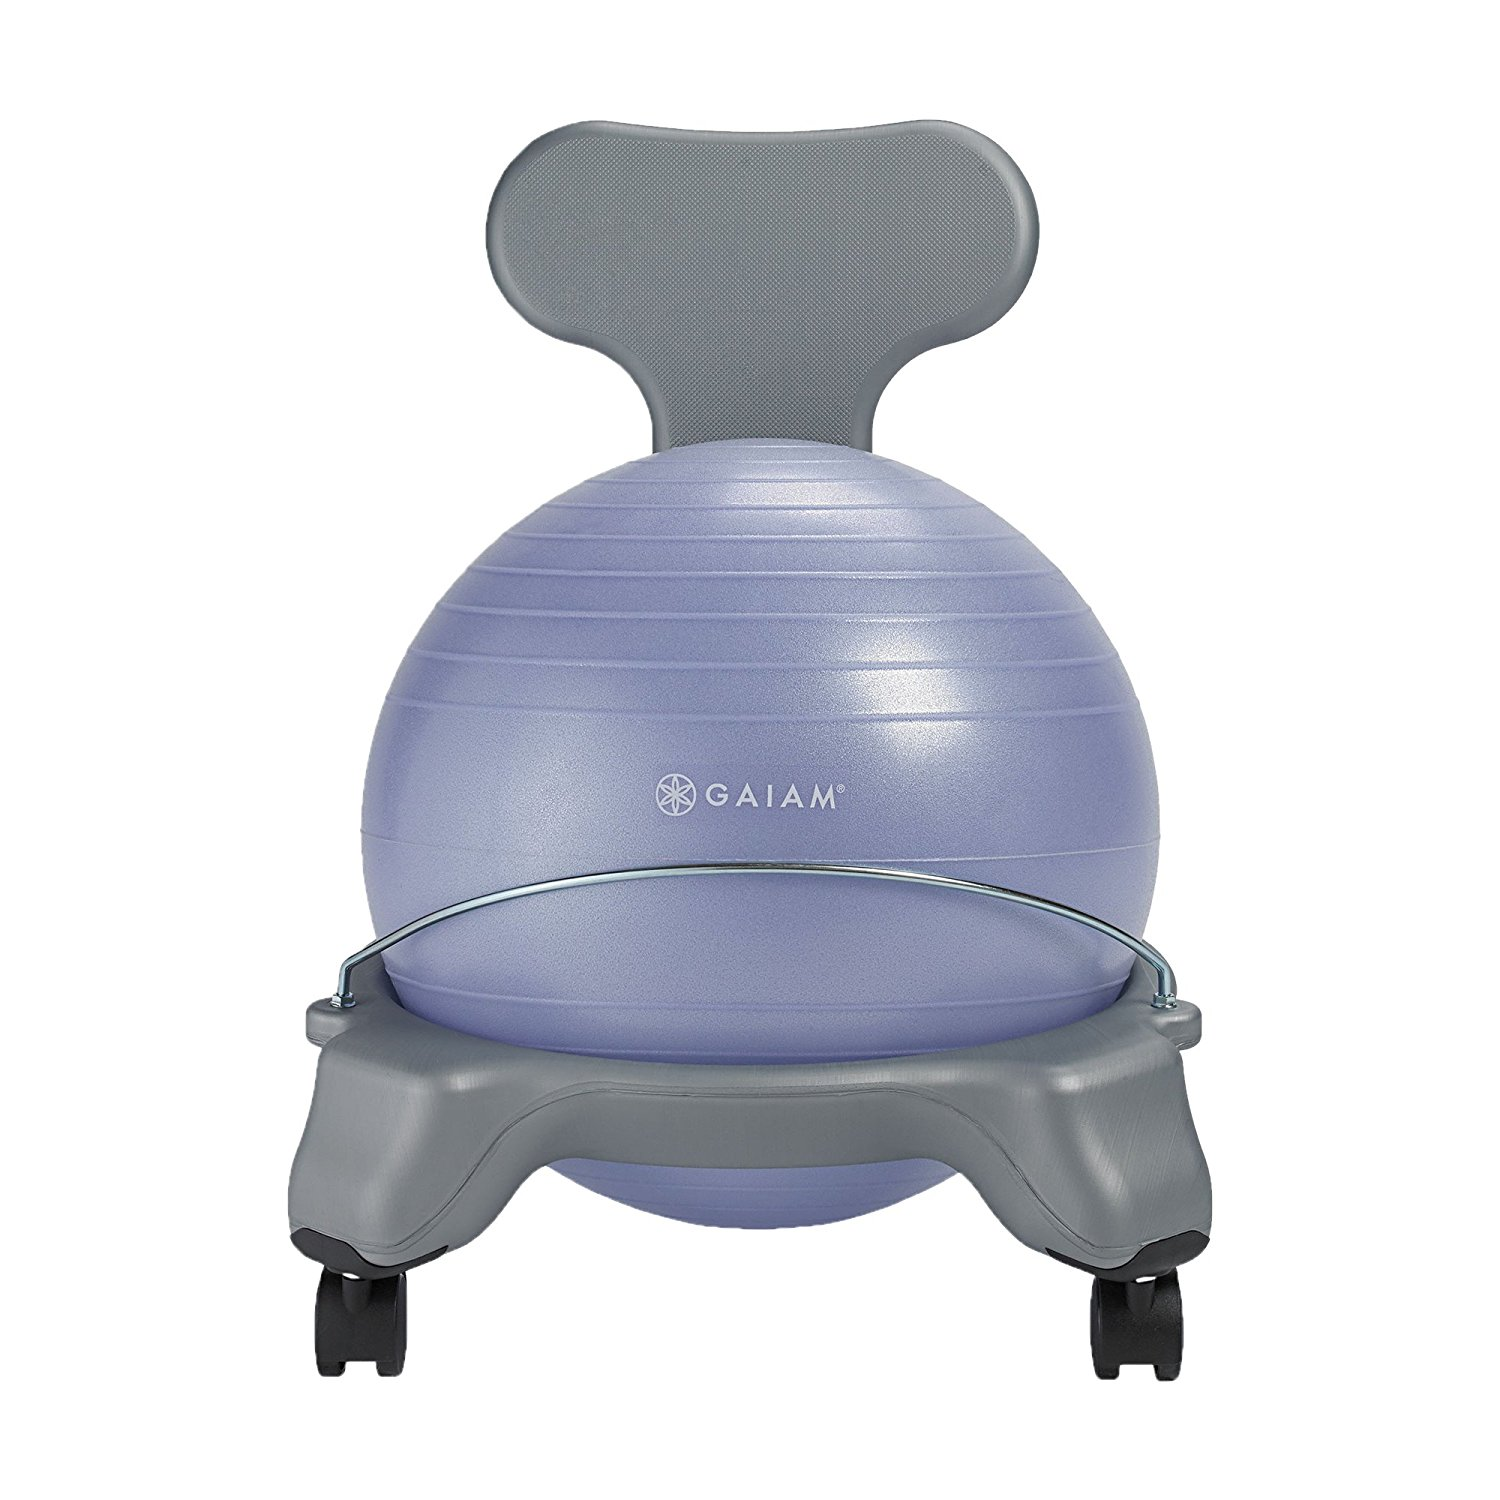 Best Exercise Balance Ball Chairs Review 2018